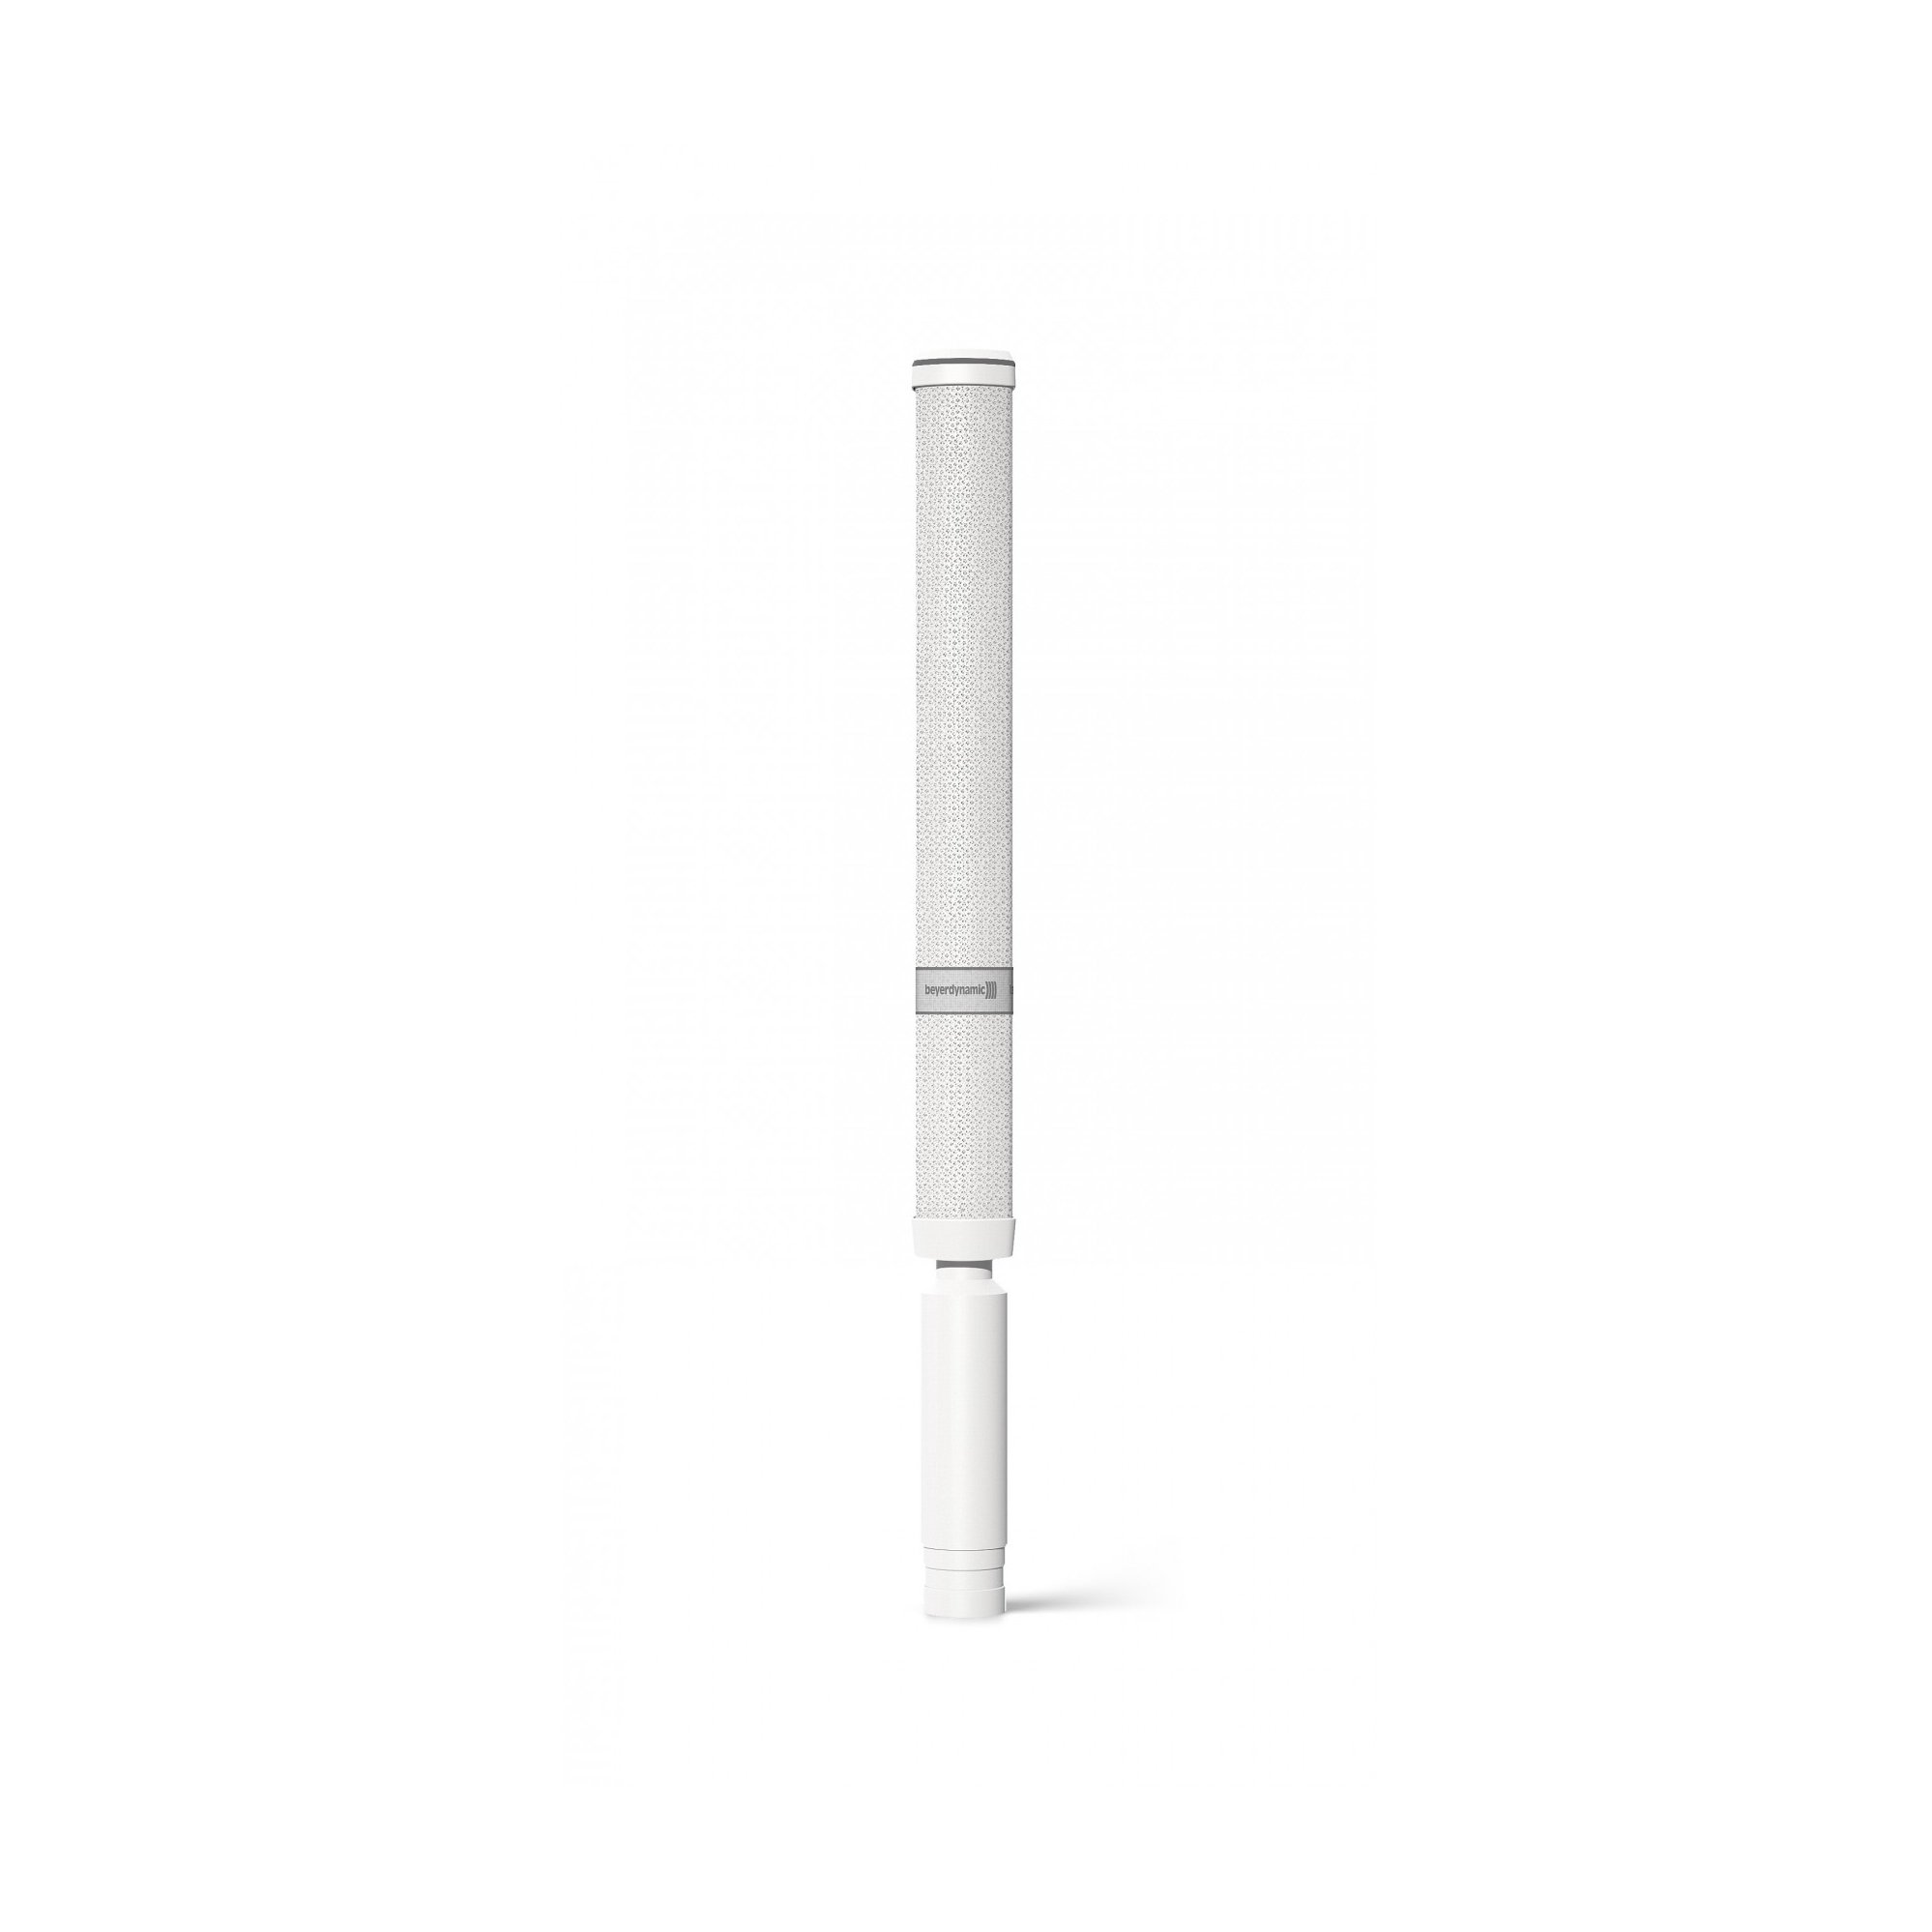 Revoluto Vertical Array Reclinable Microphone with 3-pin XLRM, in White